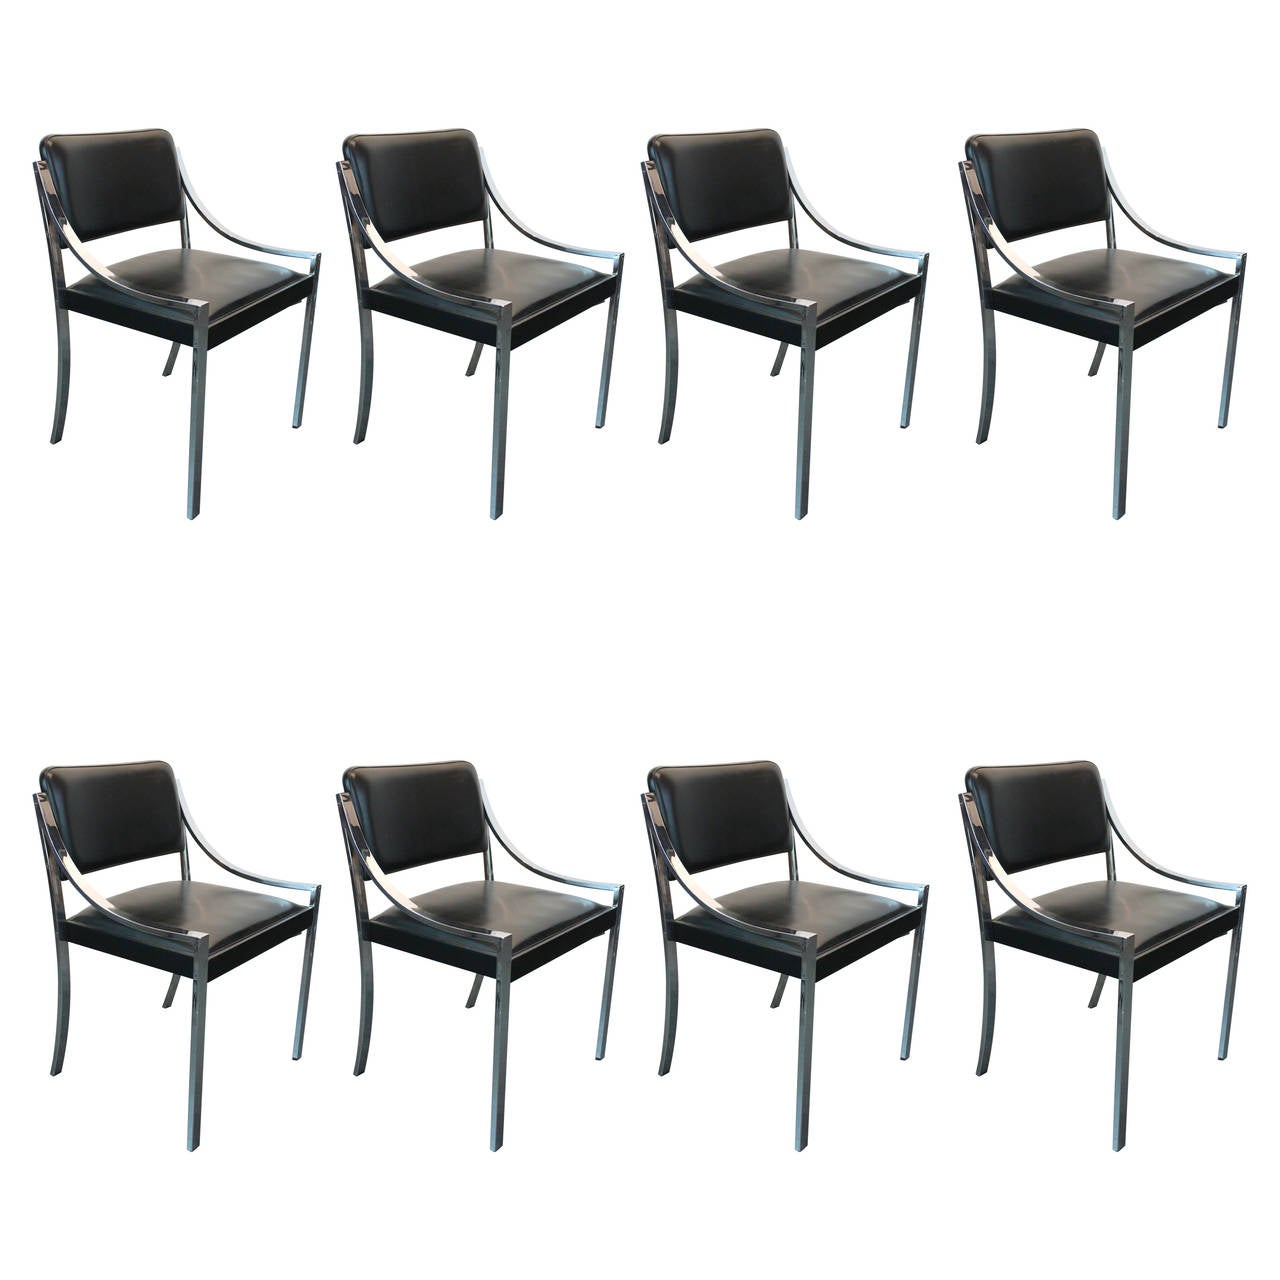 this set of eight 1970s chrome dining chairs is no longer available